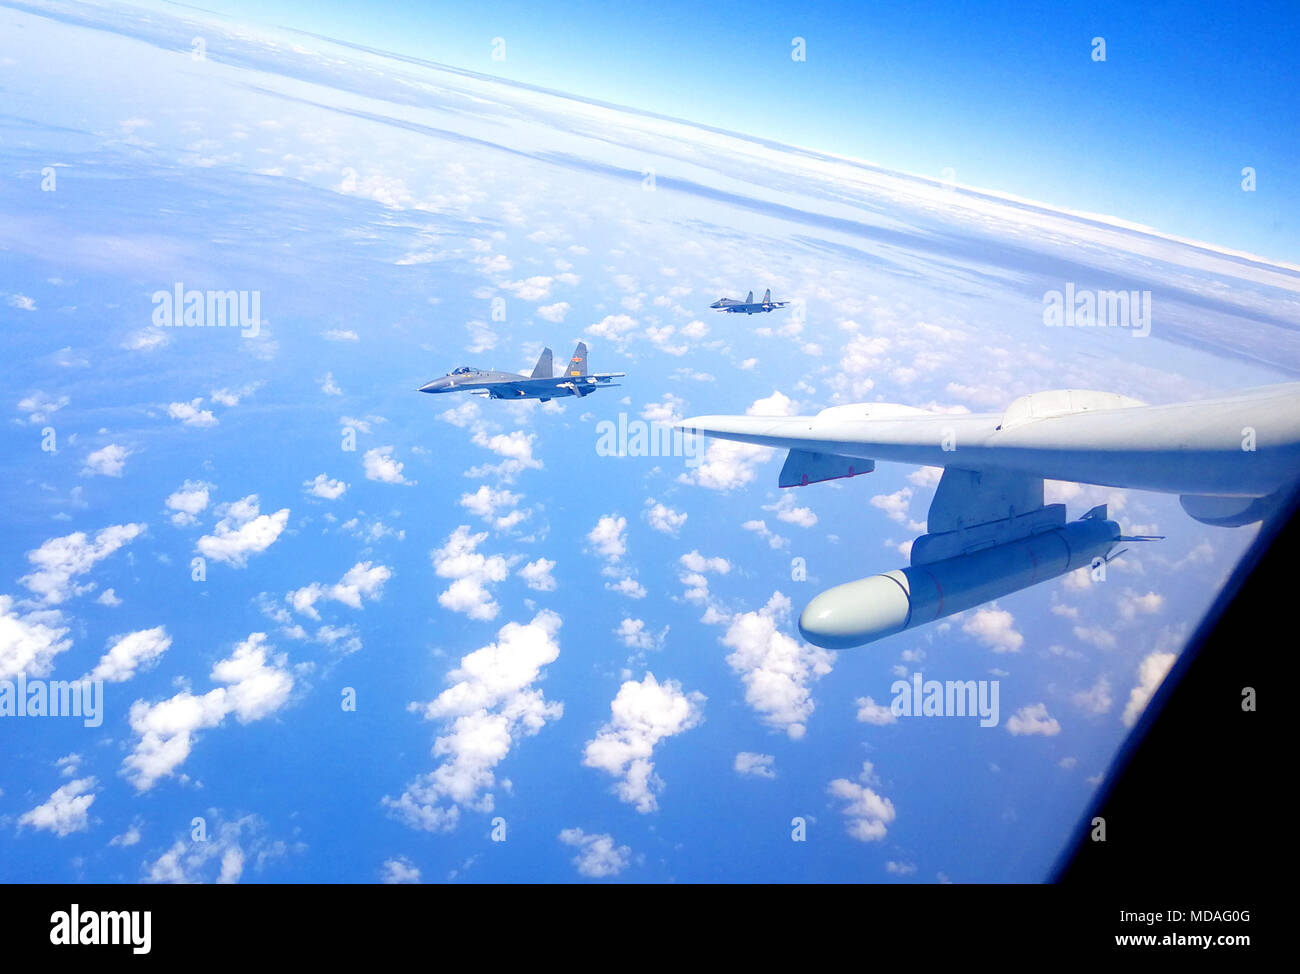 Beijing, China. 19th Apr, 2018. Chinese air force formation including H-6K bomber conduct island patrol in April 19, 2018. A Chinese air force formation conducted island patrols recently during a training exercise with an aim of improving the ability to safeguard national sovereignty and territorial integrity, an air force spokesperson confirmed Thursday. Credit: Zhai Peisong/Xinhua/Alamy Live News - Stock Image